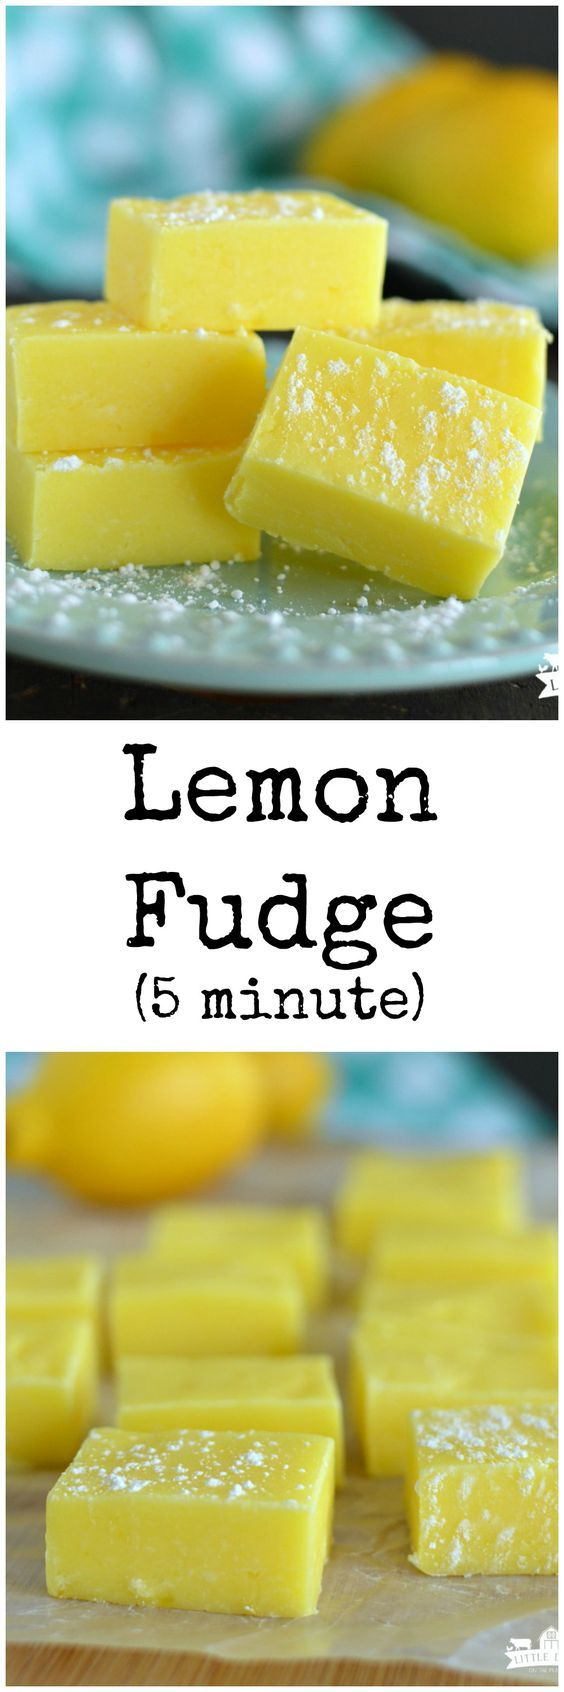 Lemon Fudge only takes 5 minutes and 4 ingredients to make! It's an easy dessert recipe that's so fun for spring/Easter!